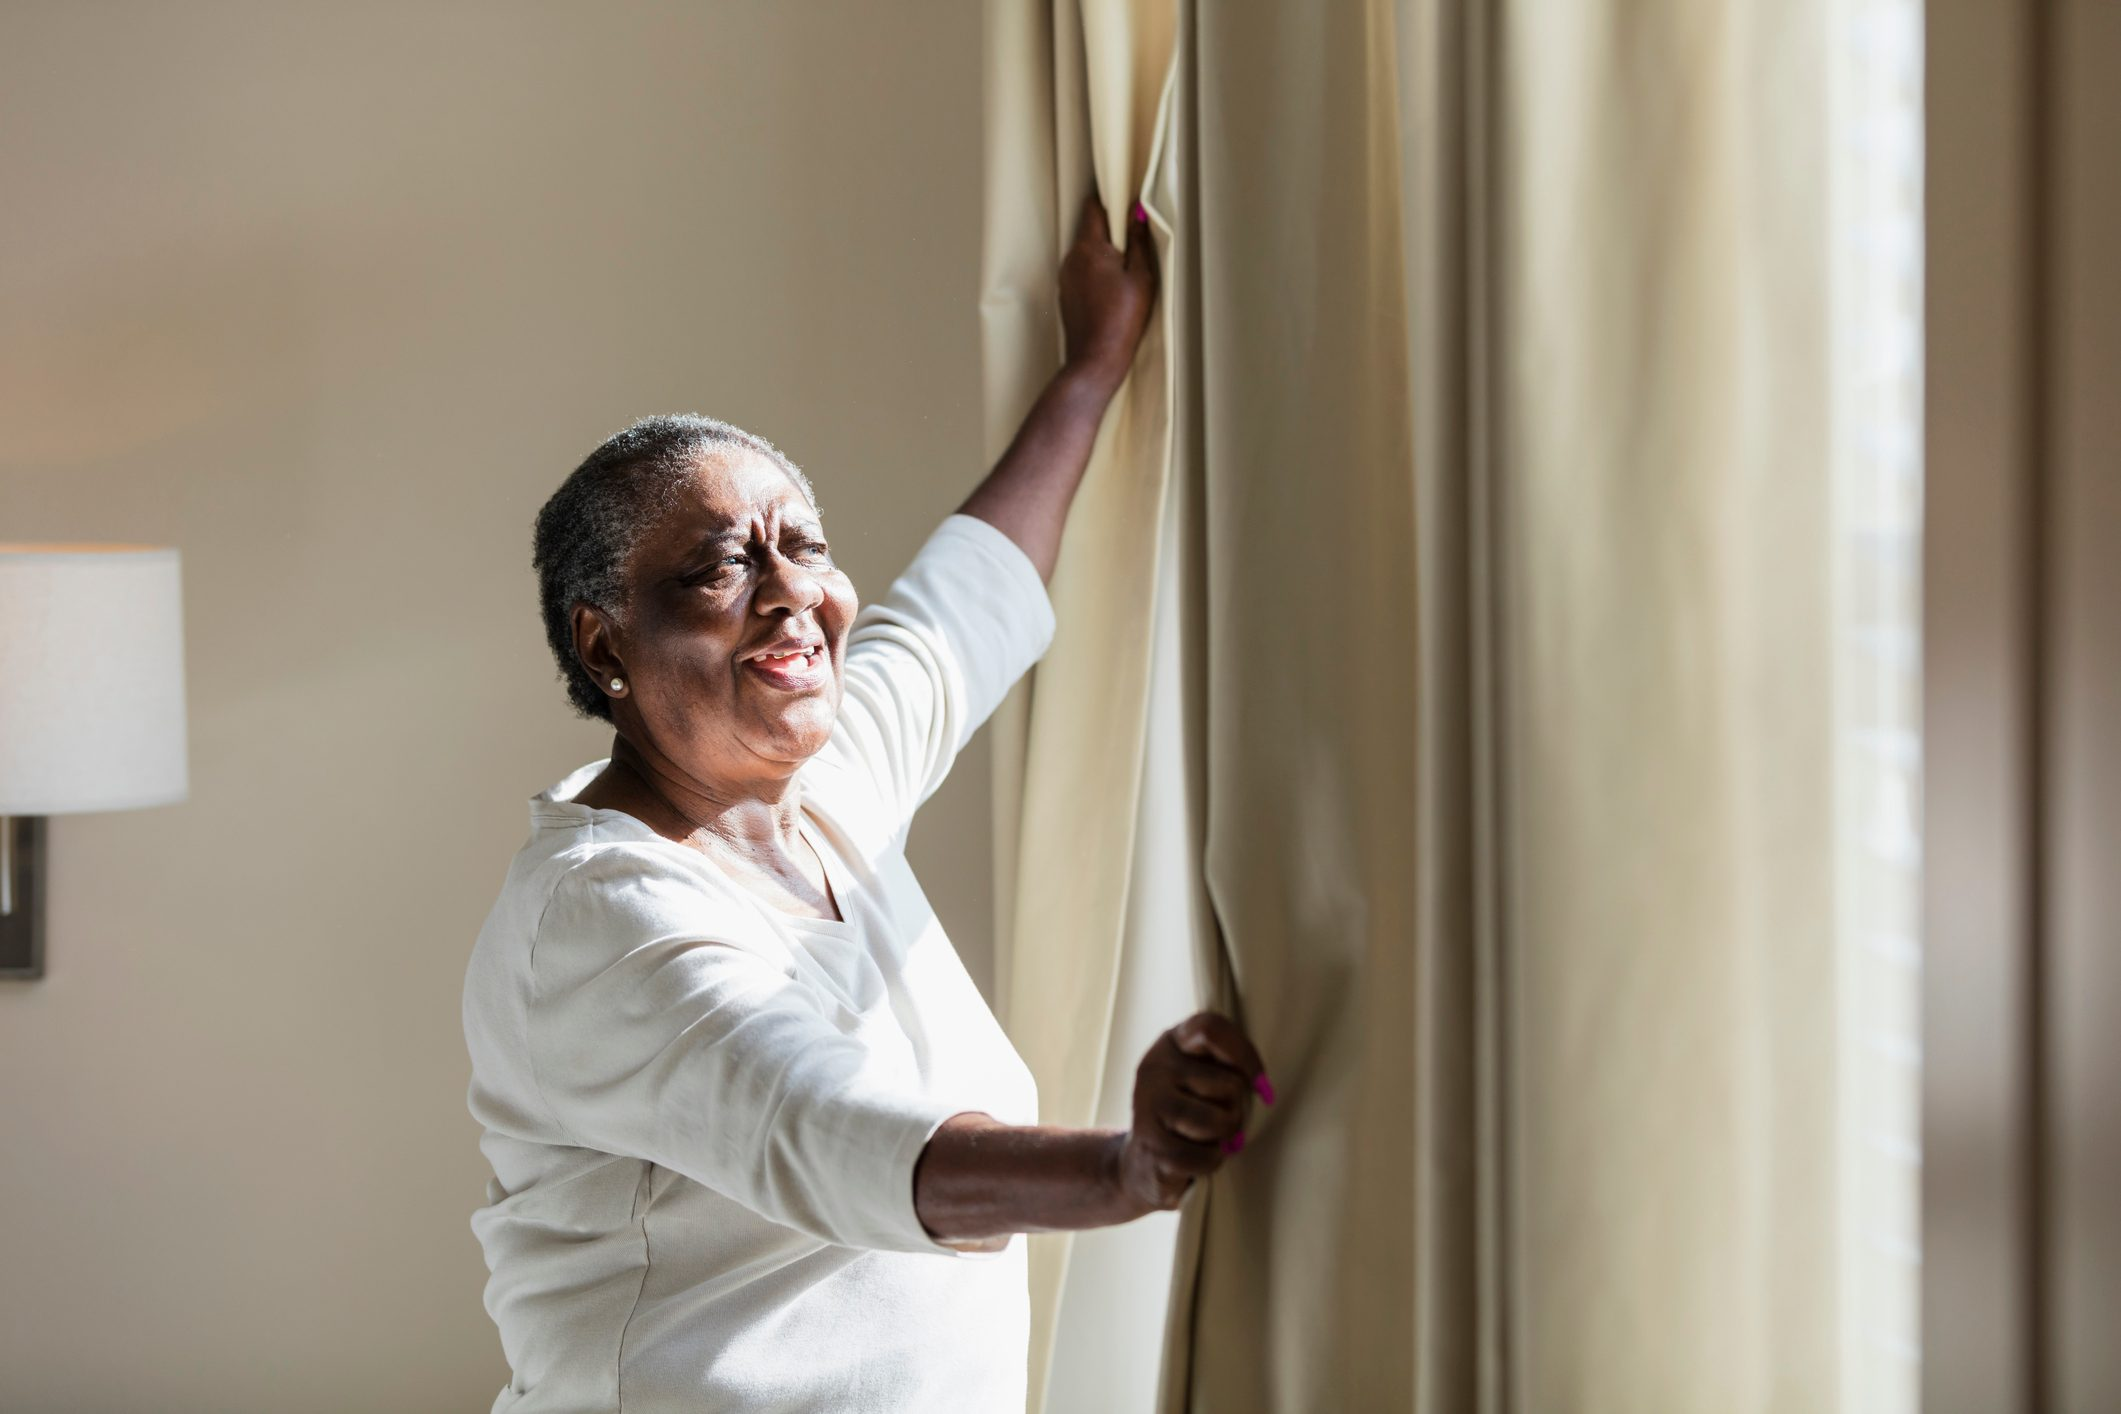 senior woman opening window curtains at home